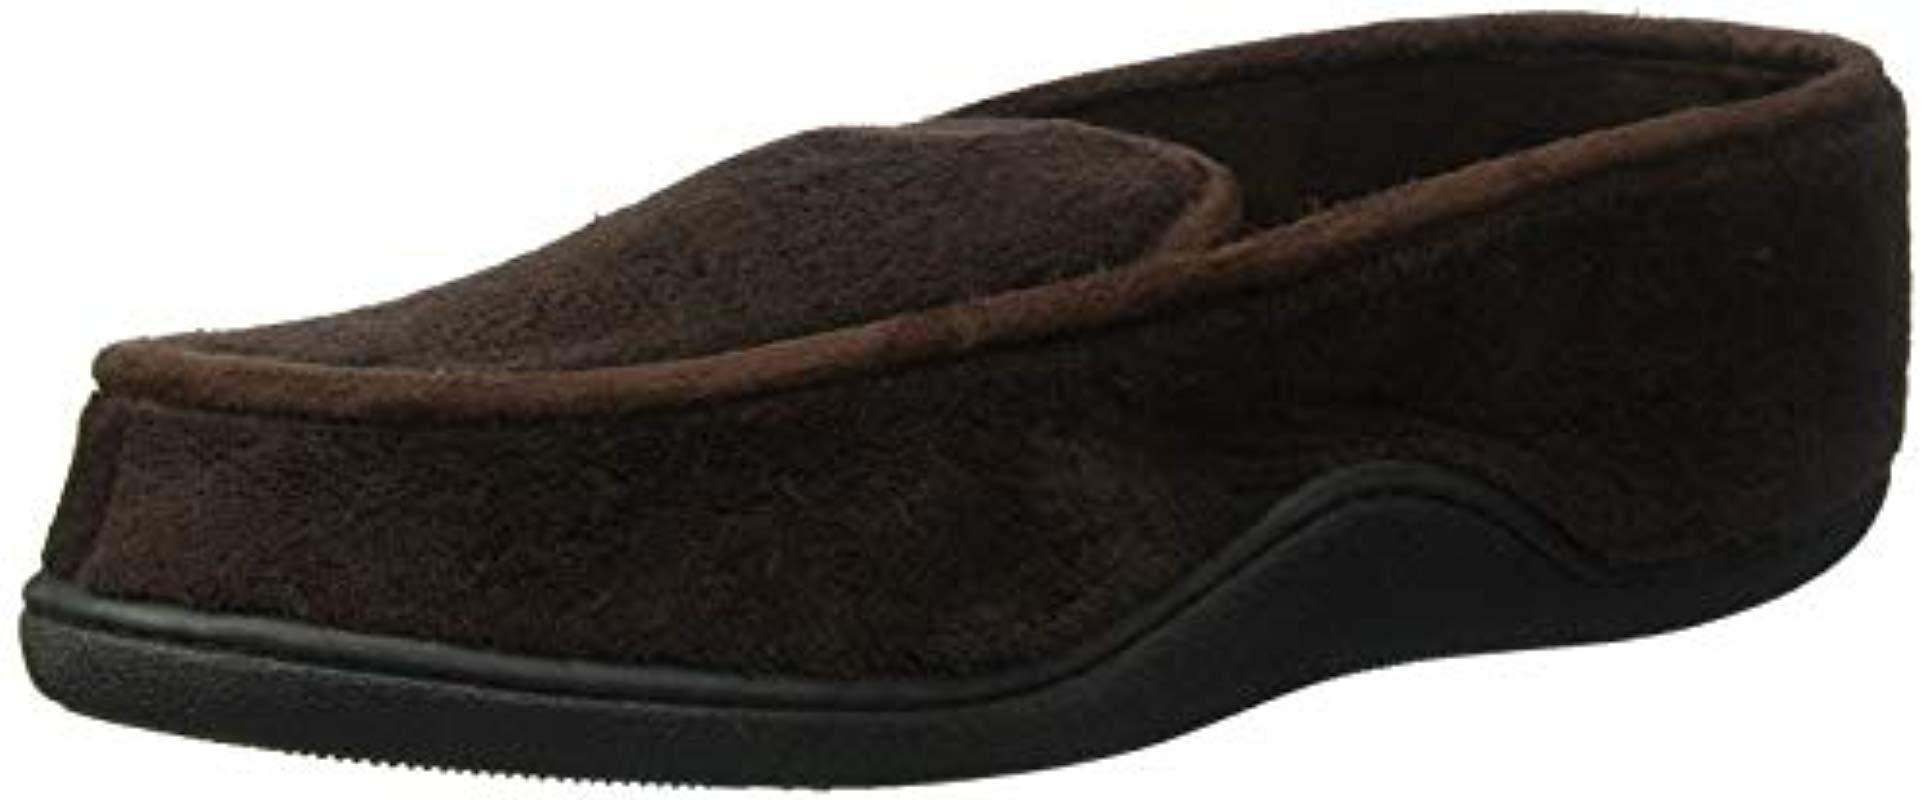 Lyst - Isotoner Microterry Slip On Slippers in Brown for Men a4697b063